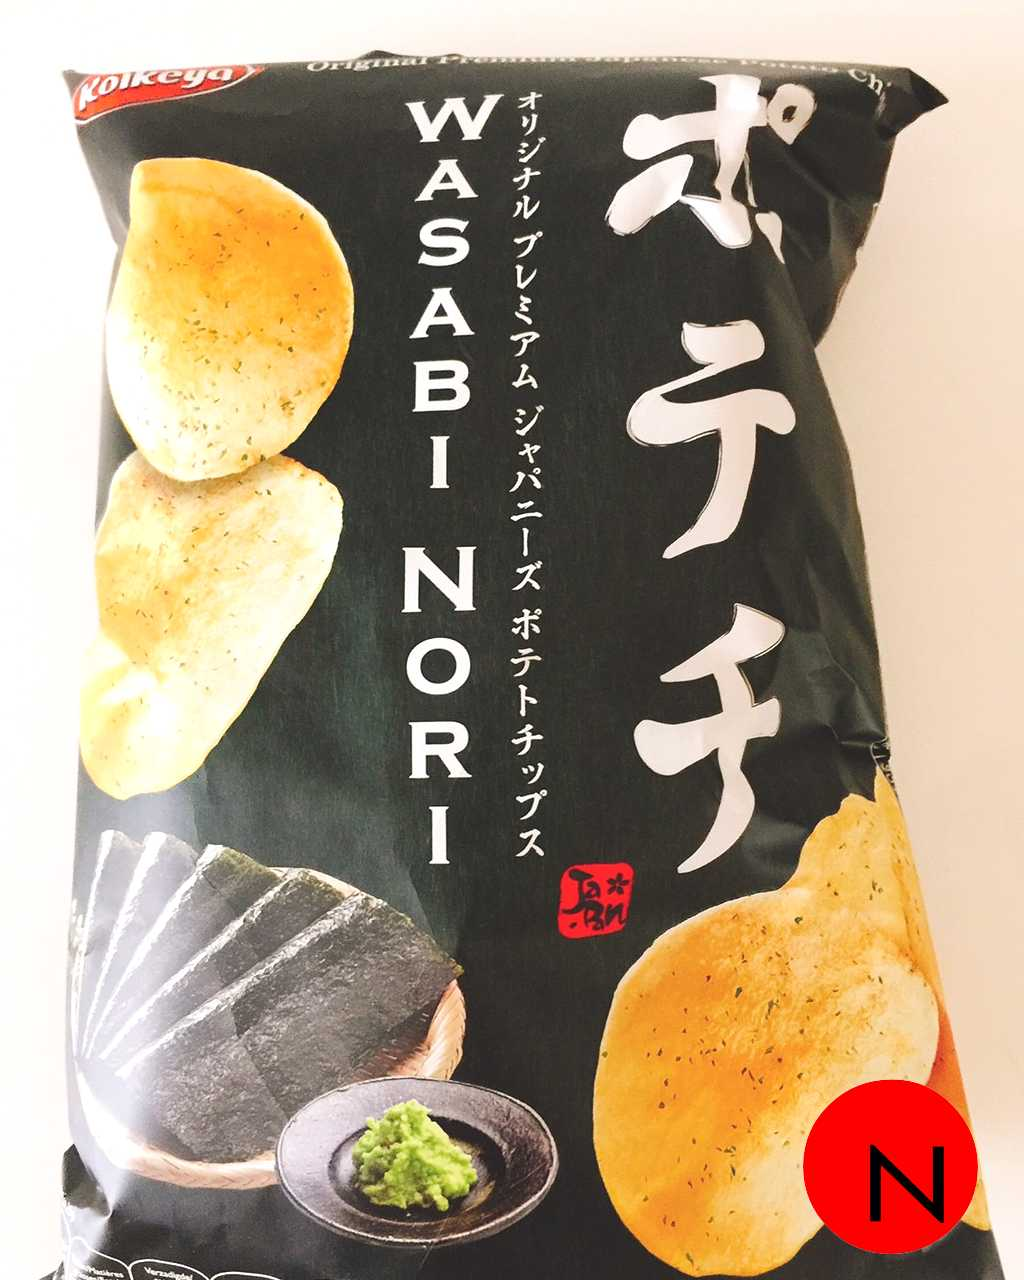 KOIKEYA POTATO CHIPS WASABI NORI 100G